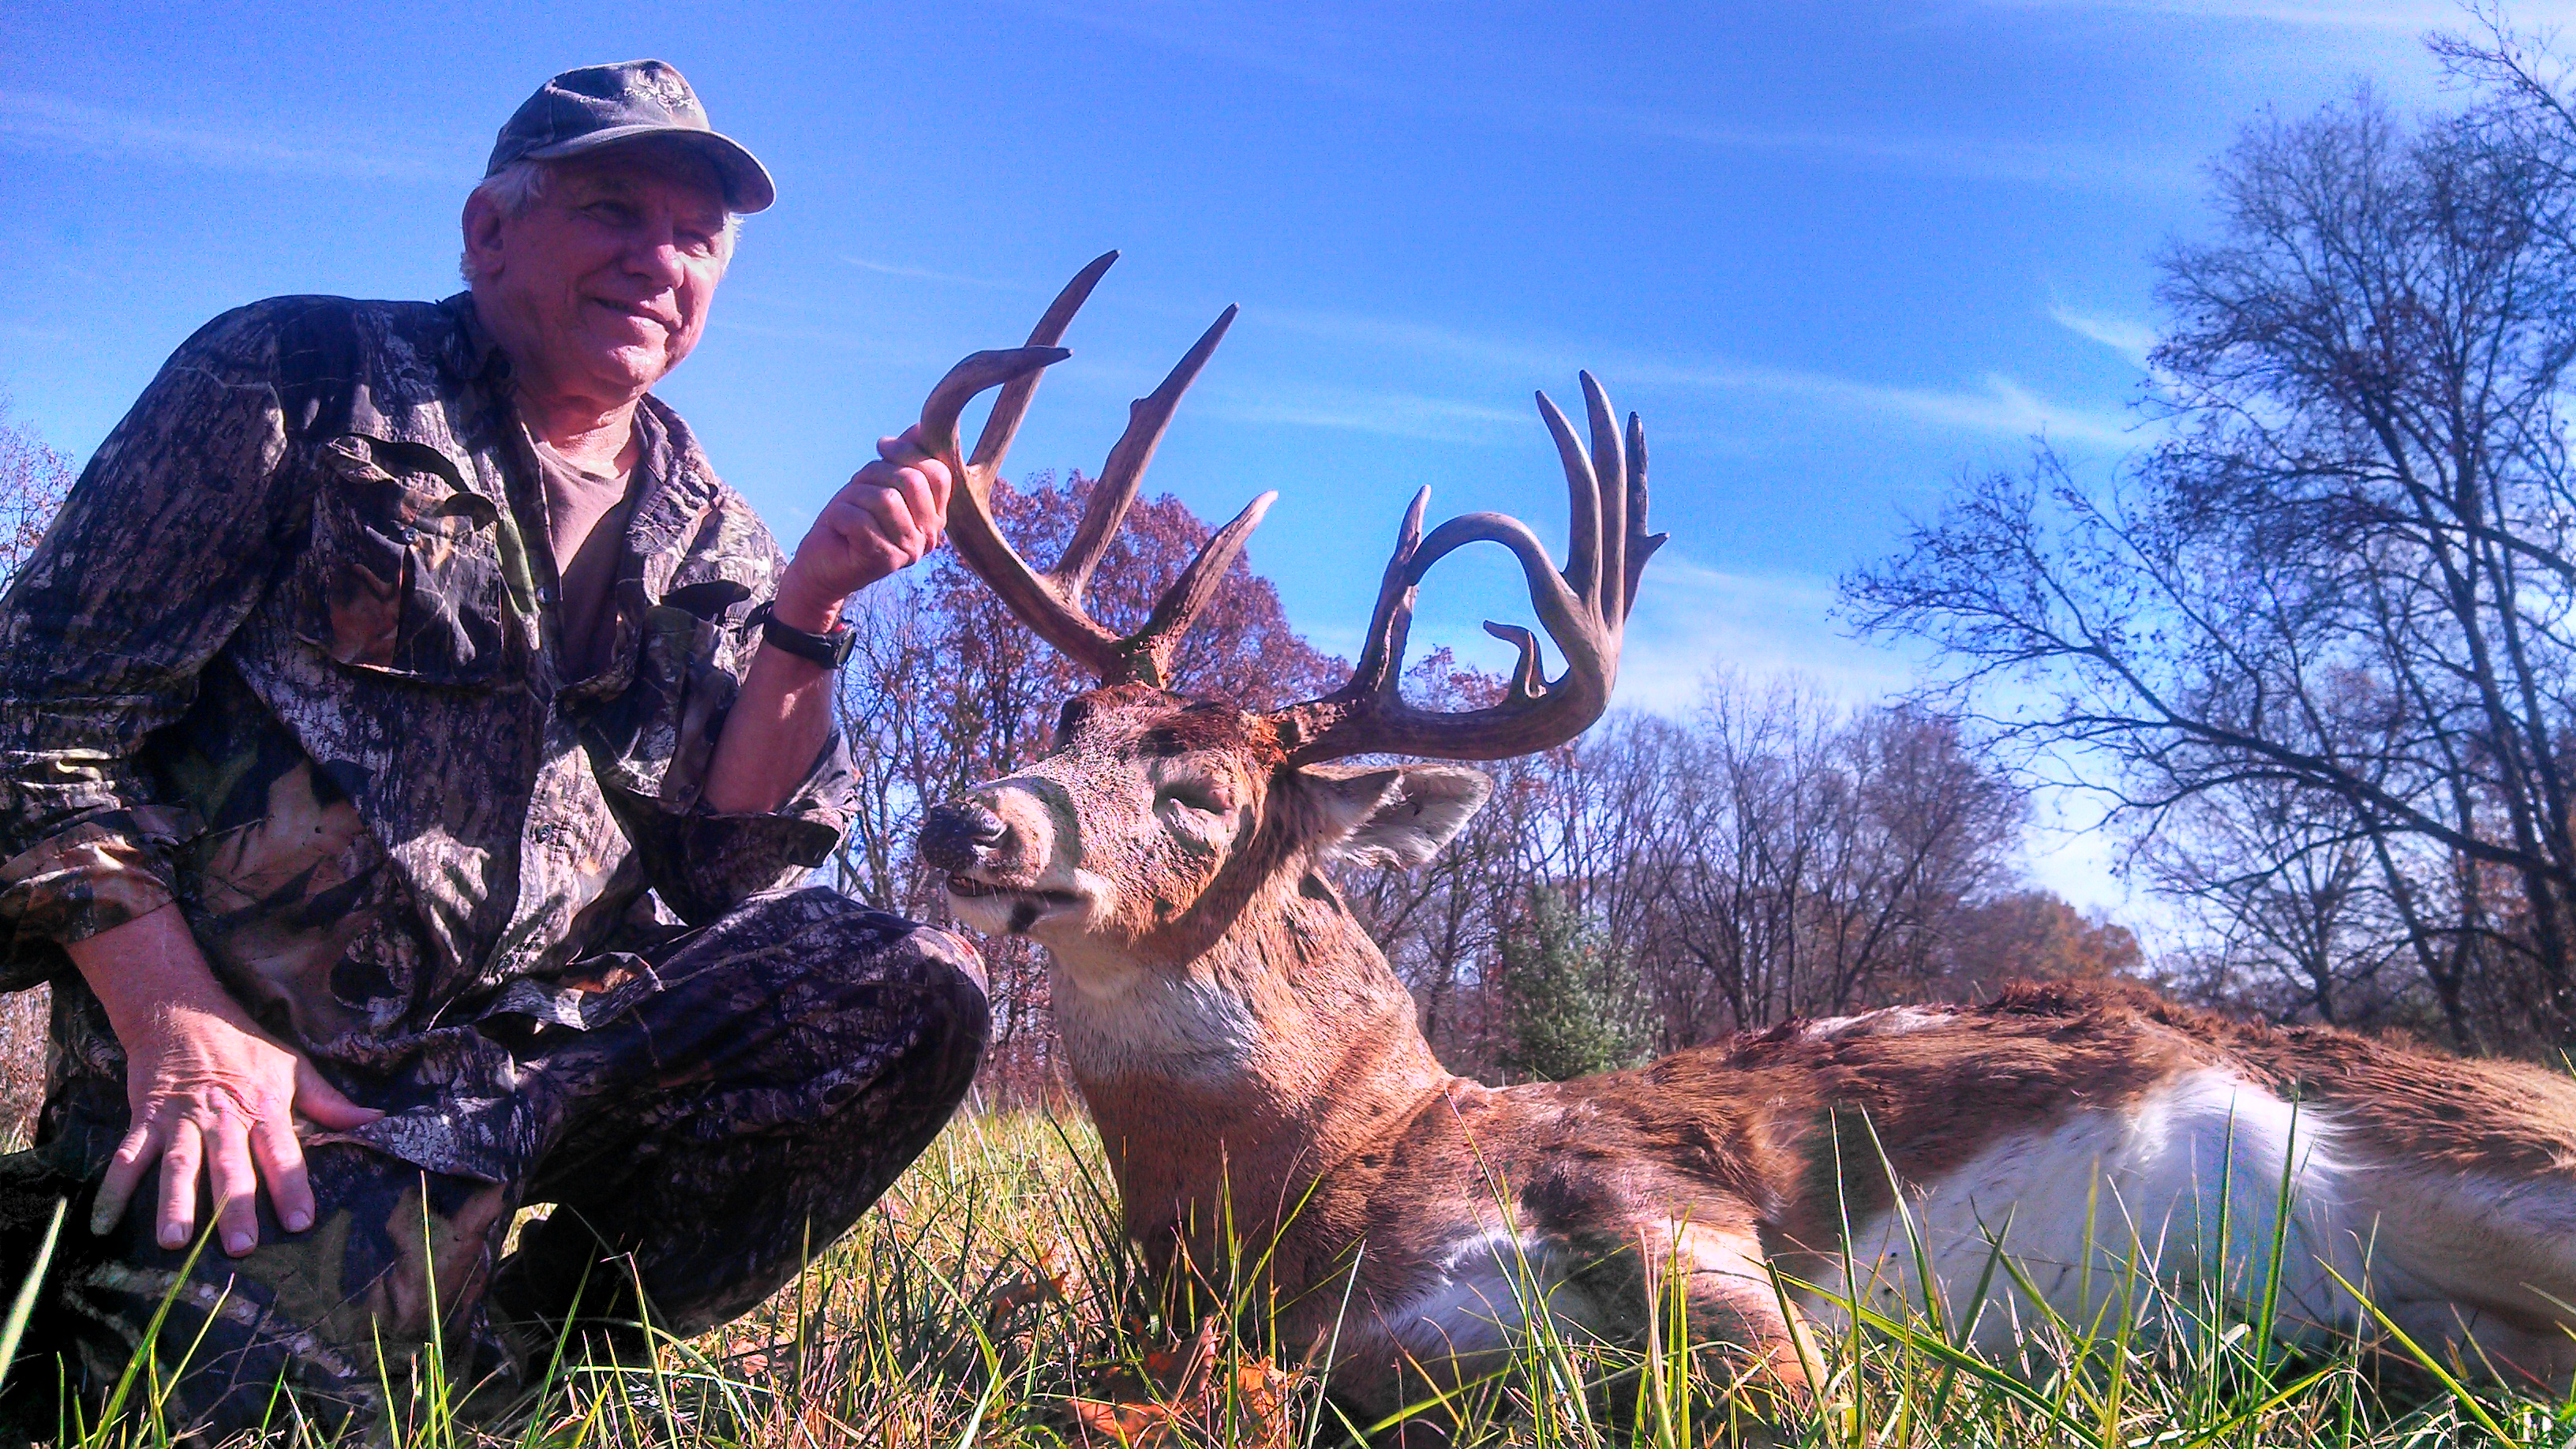 green score 175 3/8 - North American Whitetail